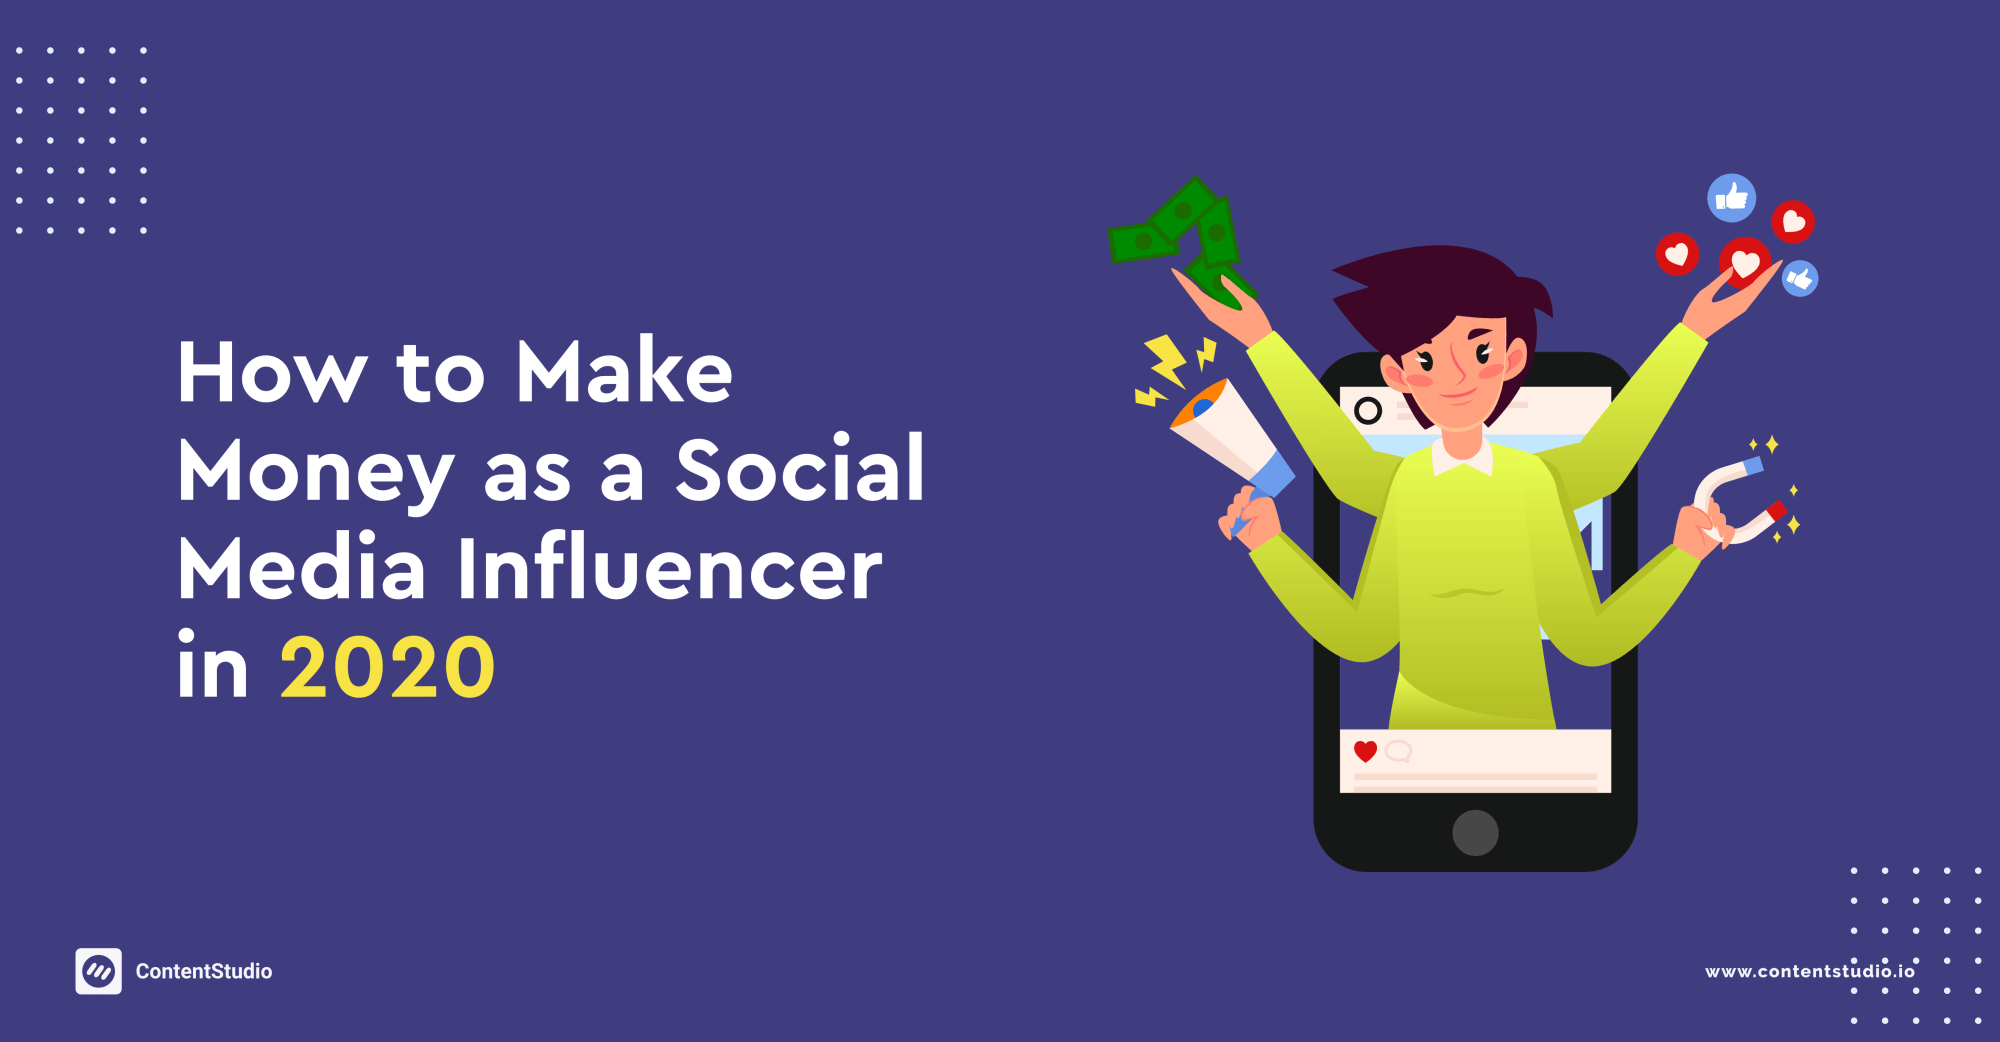 How to Make Money as a Social Media Influencer in 2020